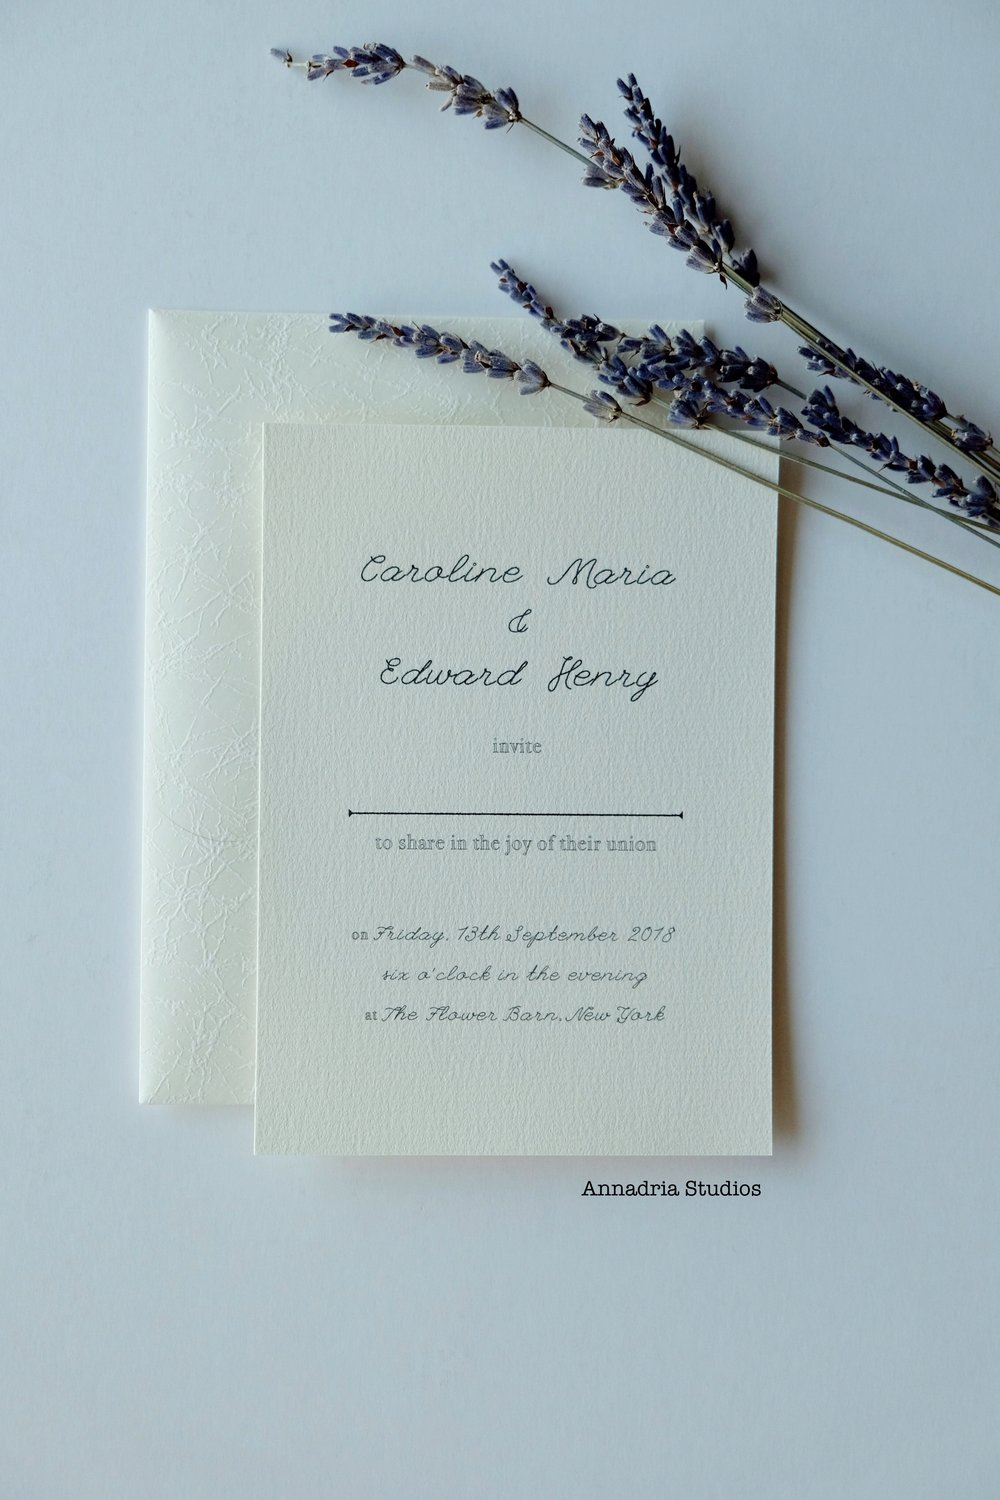 I Diy Ed My Own Wedding Invitations And You Probably Wouldn T Be